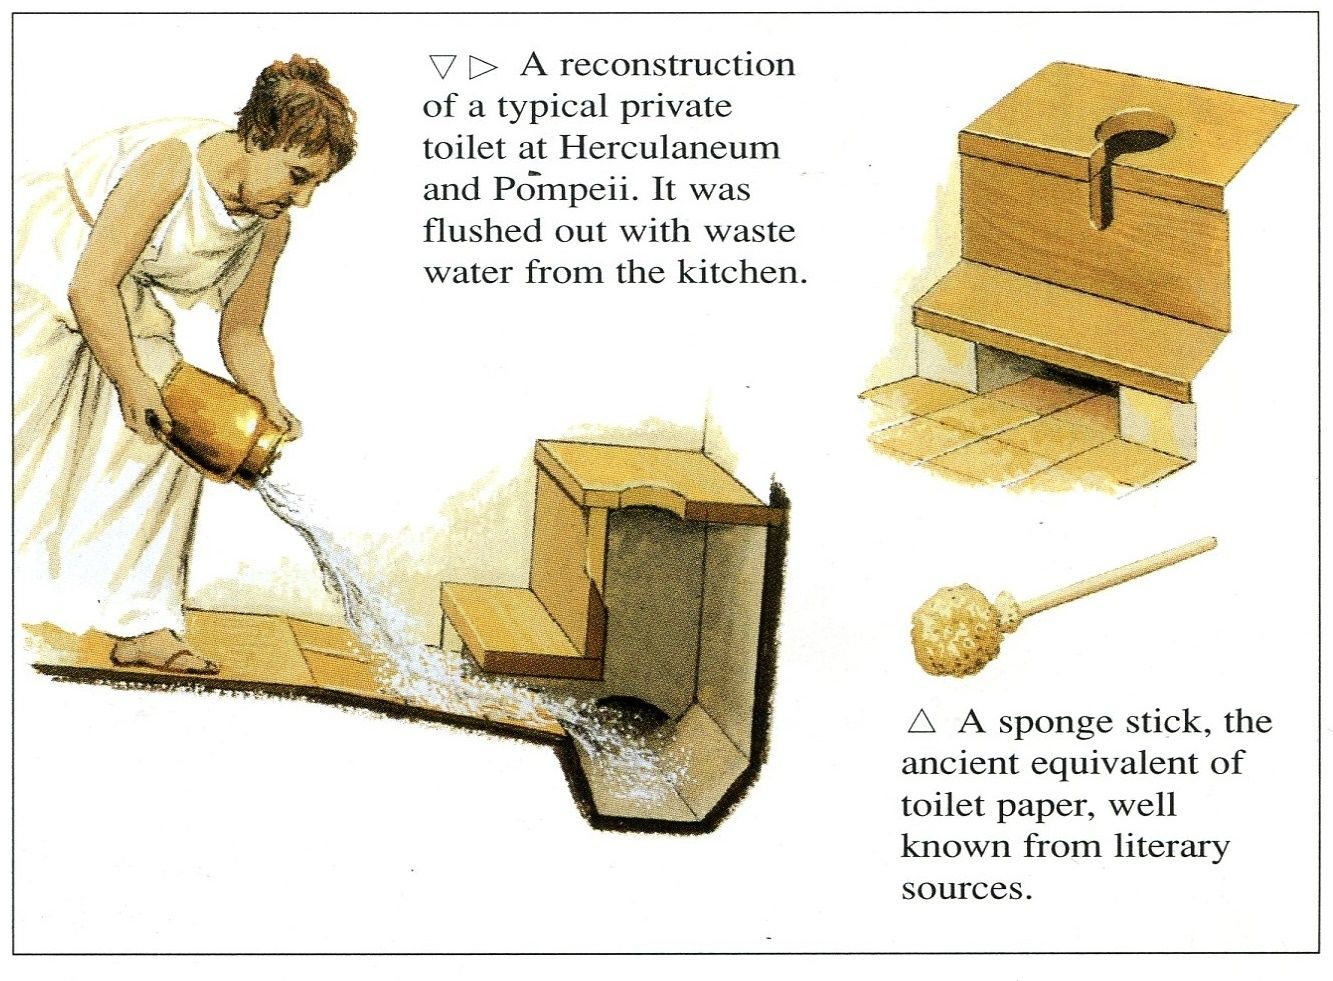 Technological improvements romans made to greek architecture essay